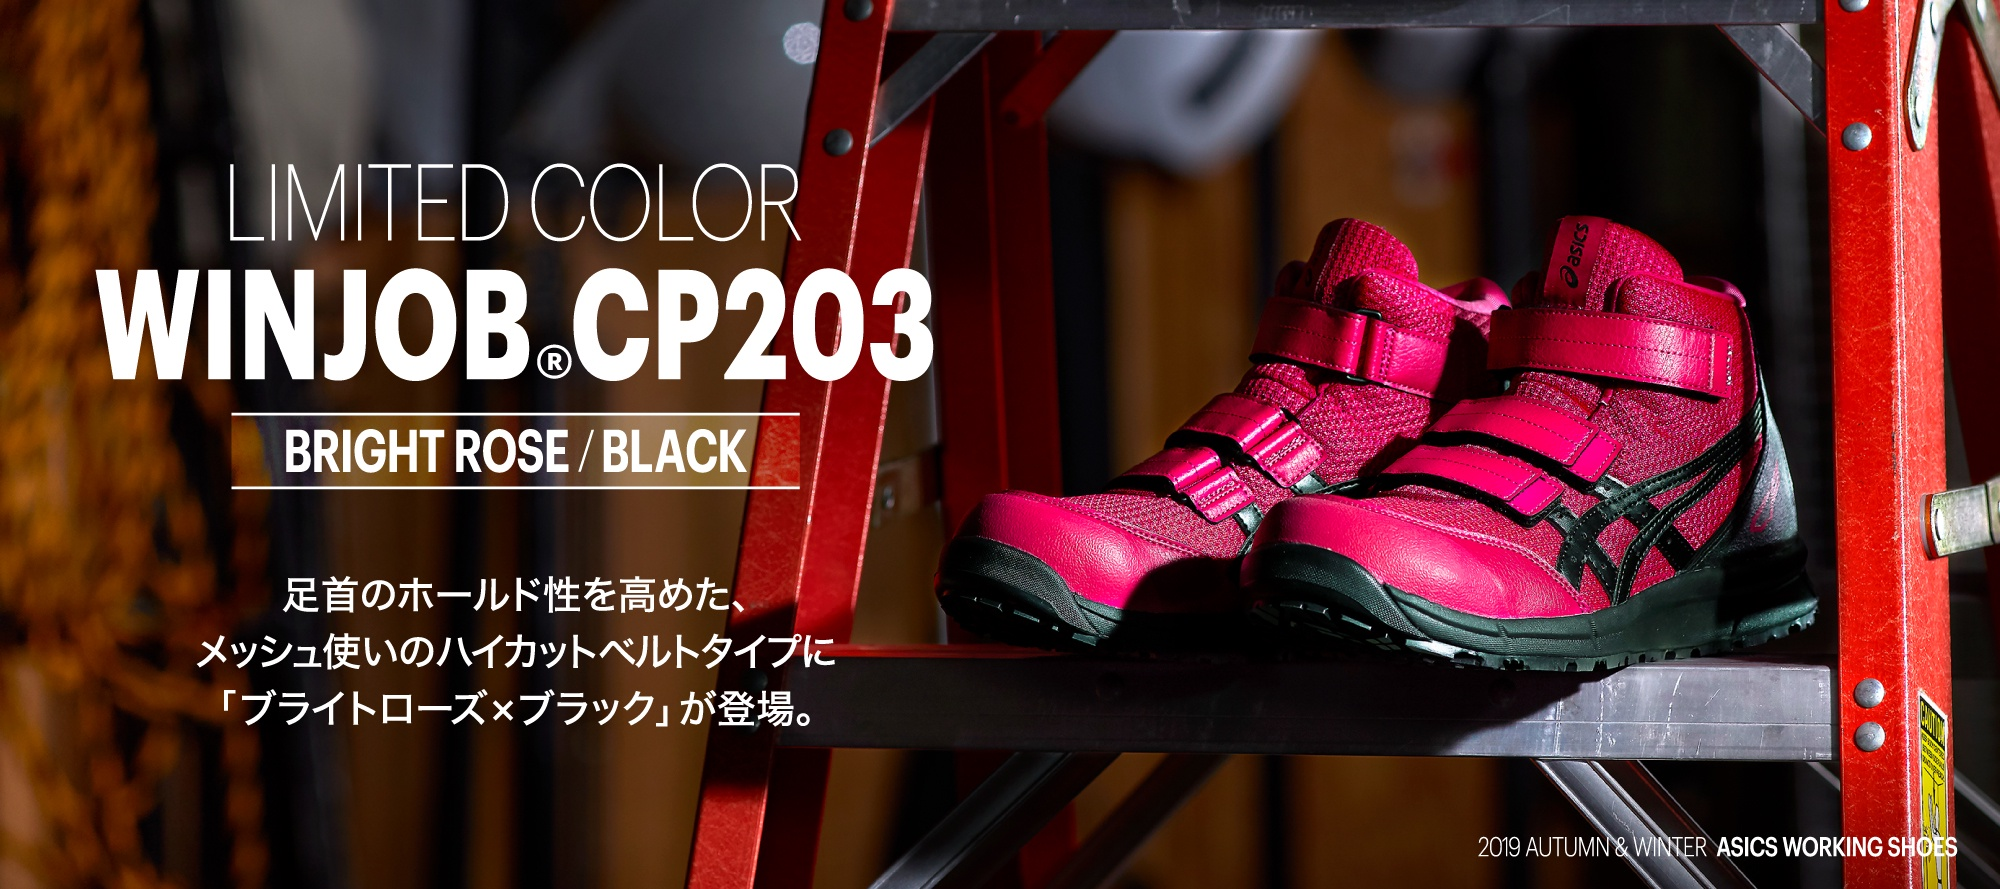 LIMITED COLOR WINJOB®CP203 BRIGHT ROSE / BLACK